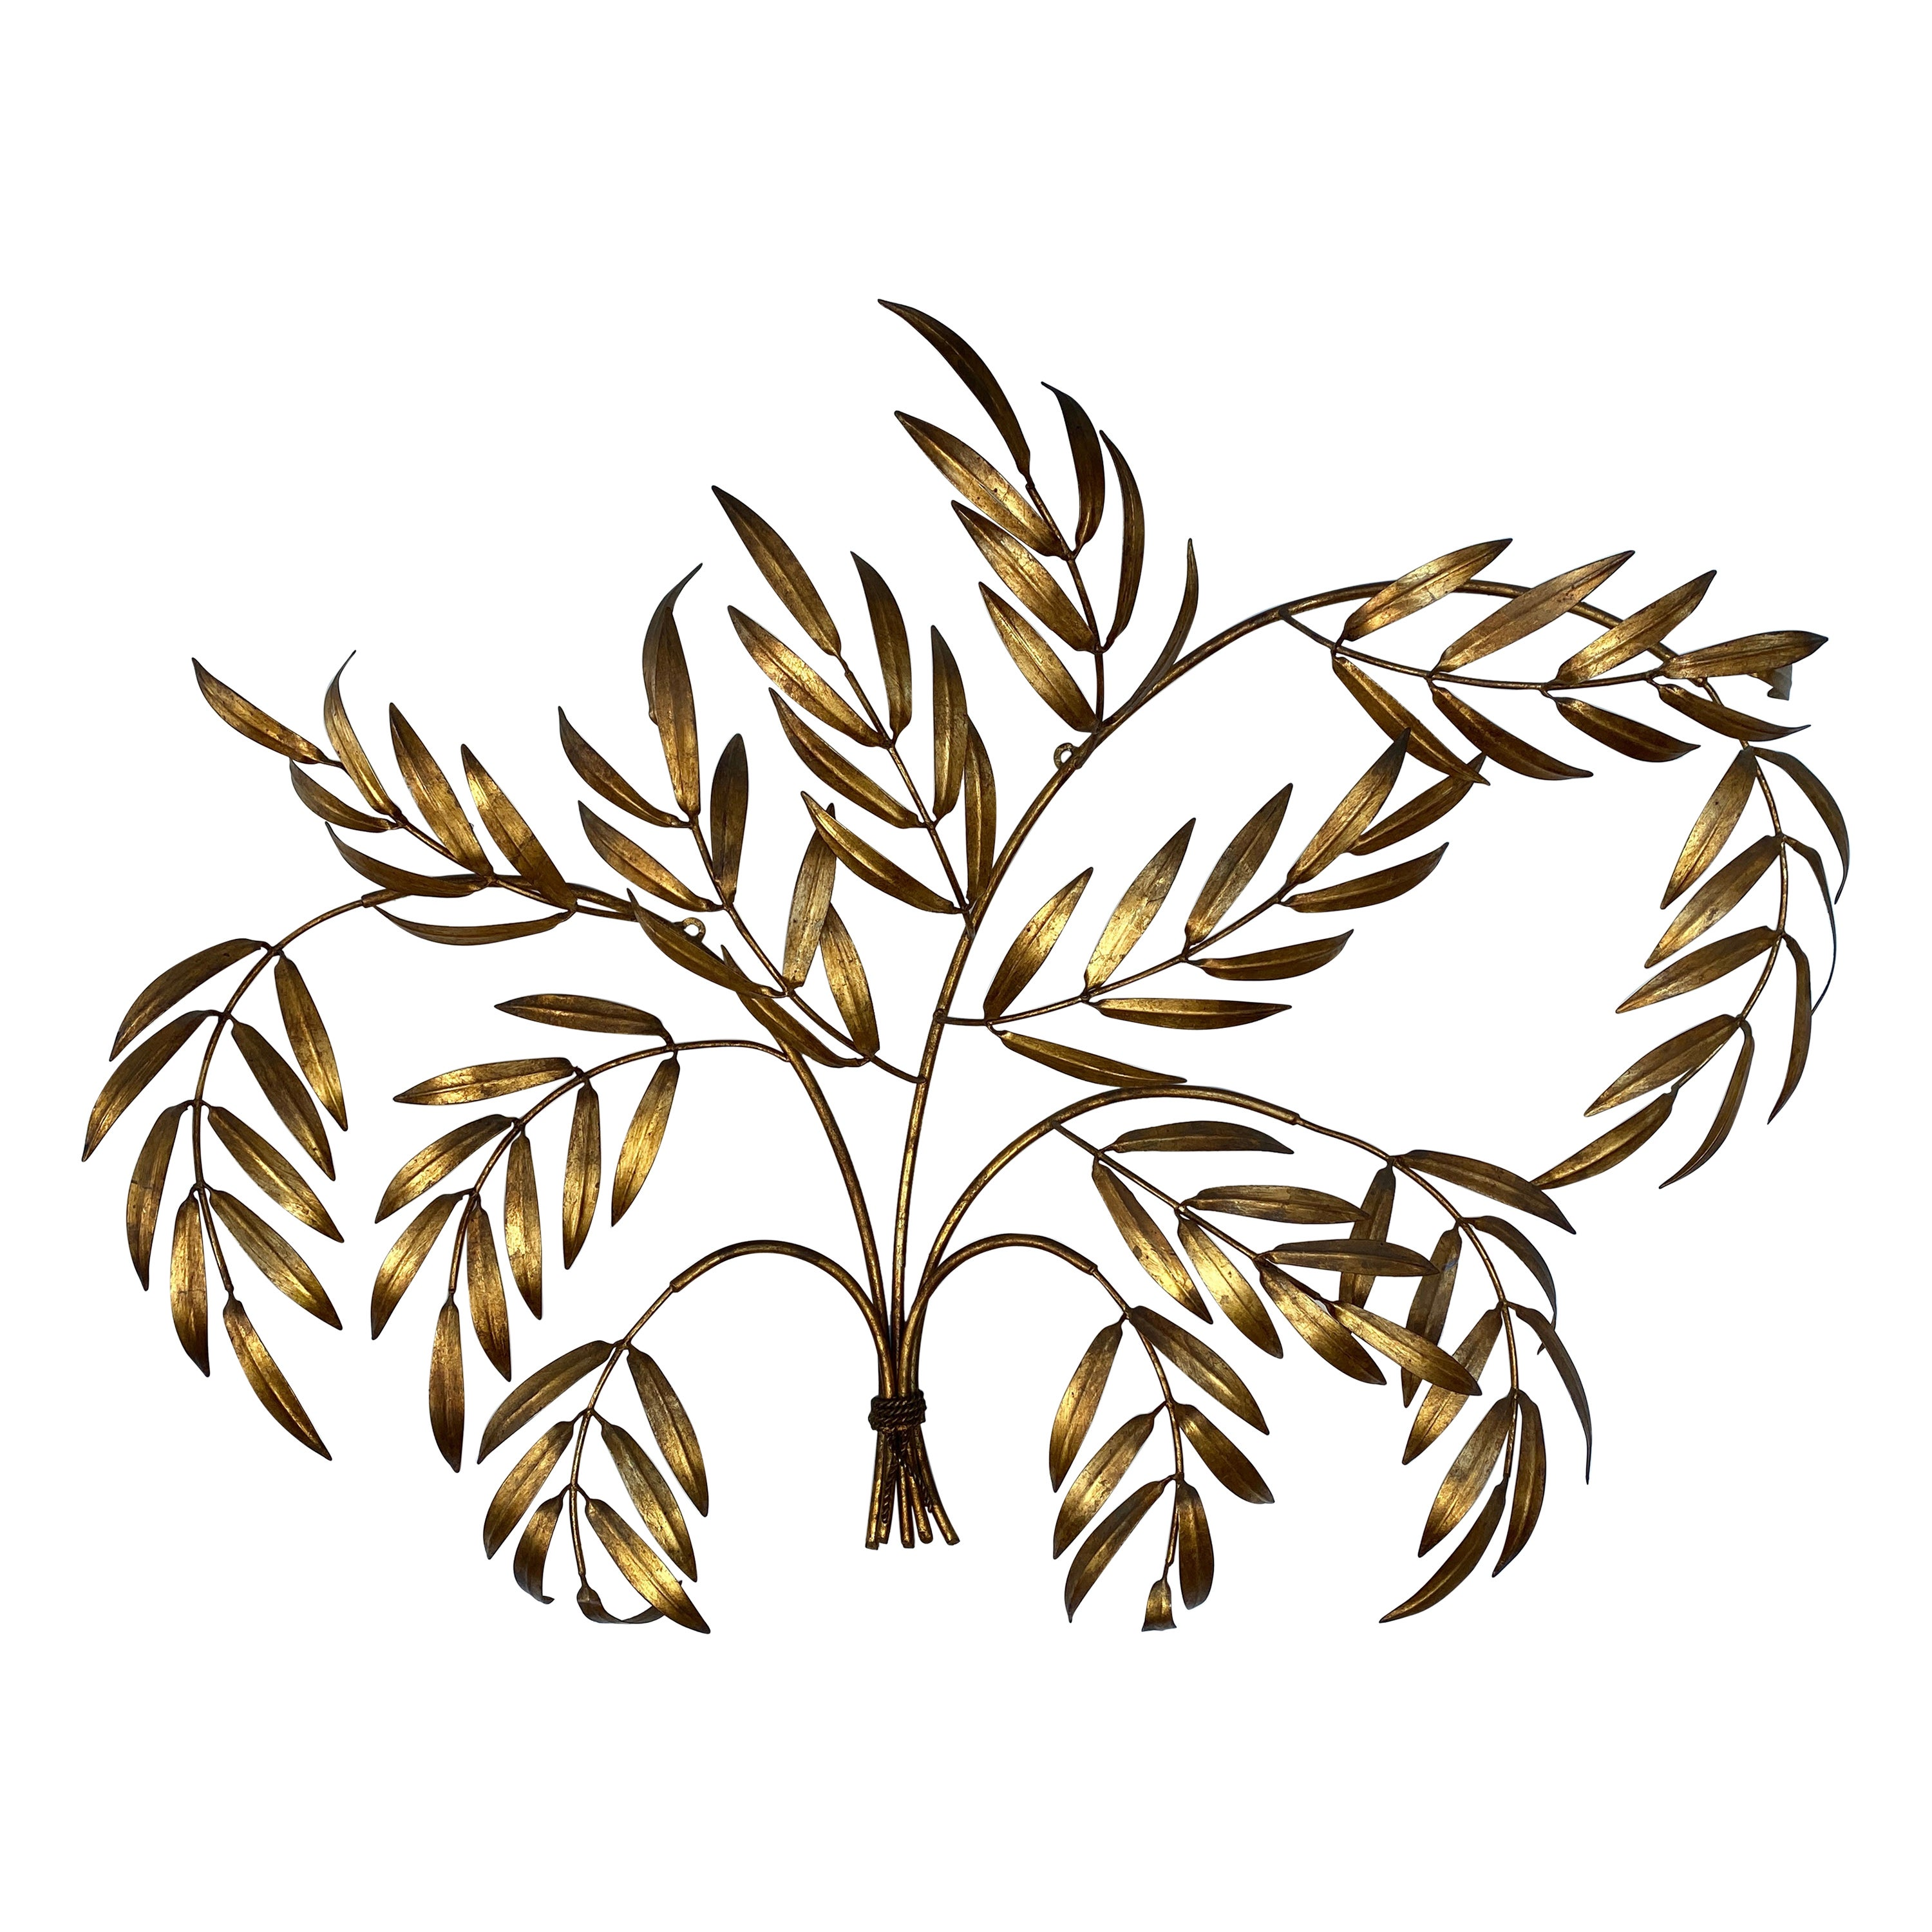 Vintage 1950s Italian Gilded Branches & Leaves Wall Sculpture